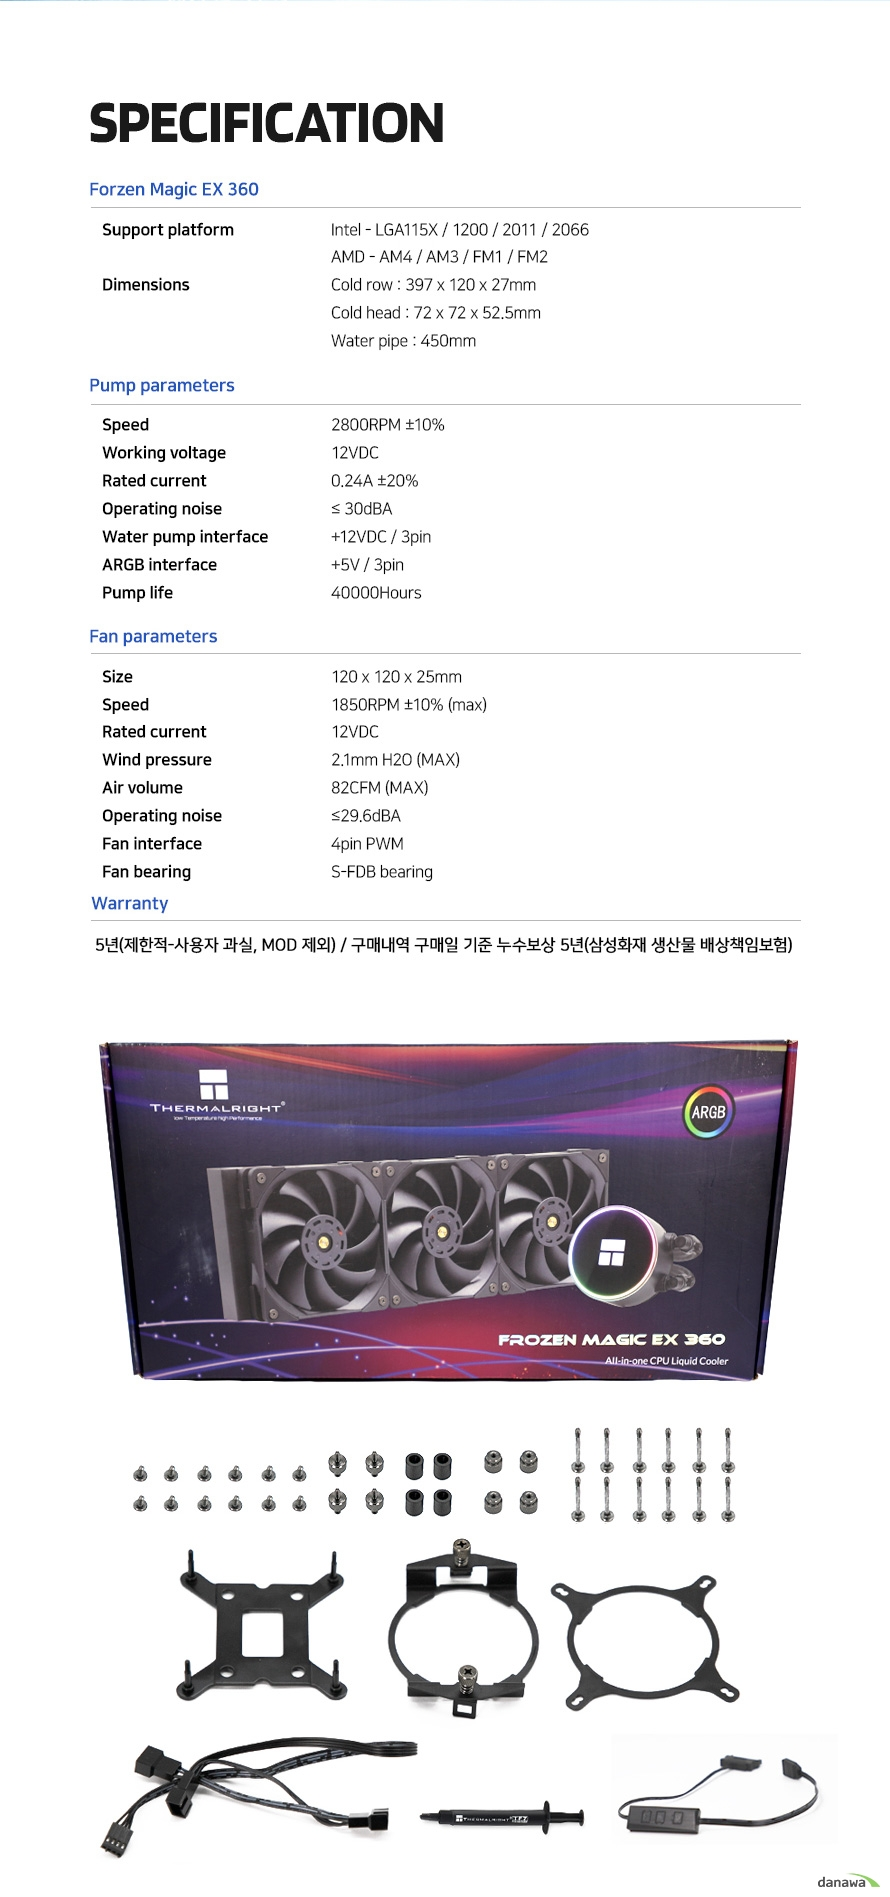 Thermalright FROZEN MAGIC EX360